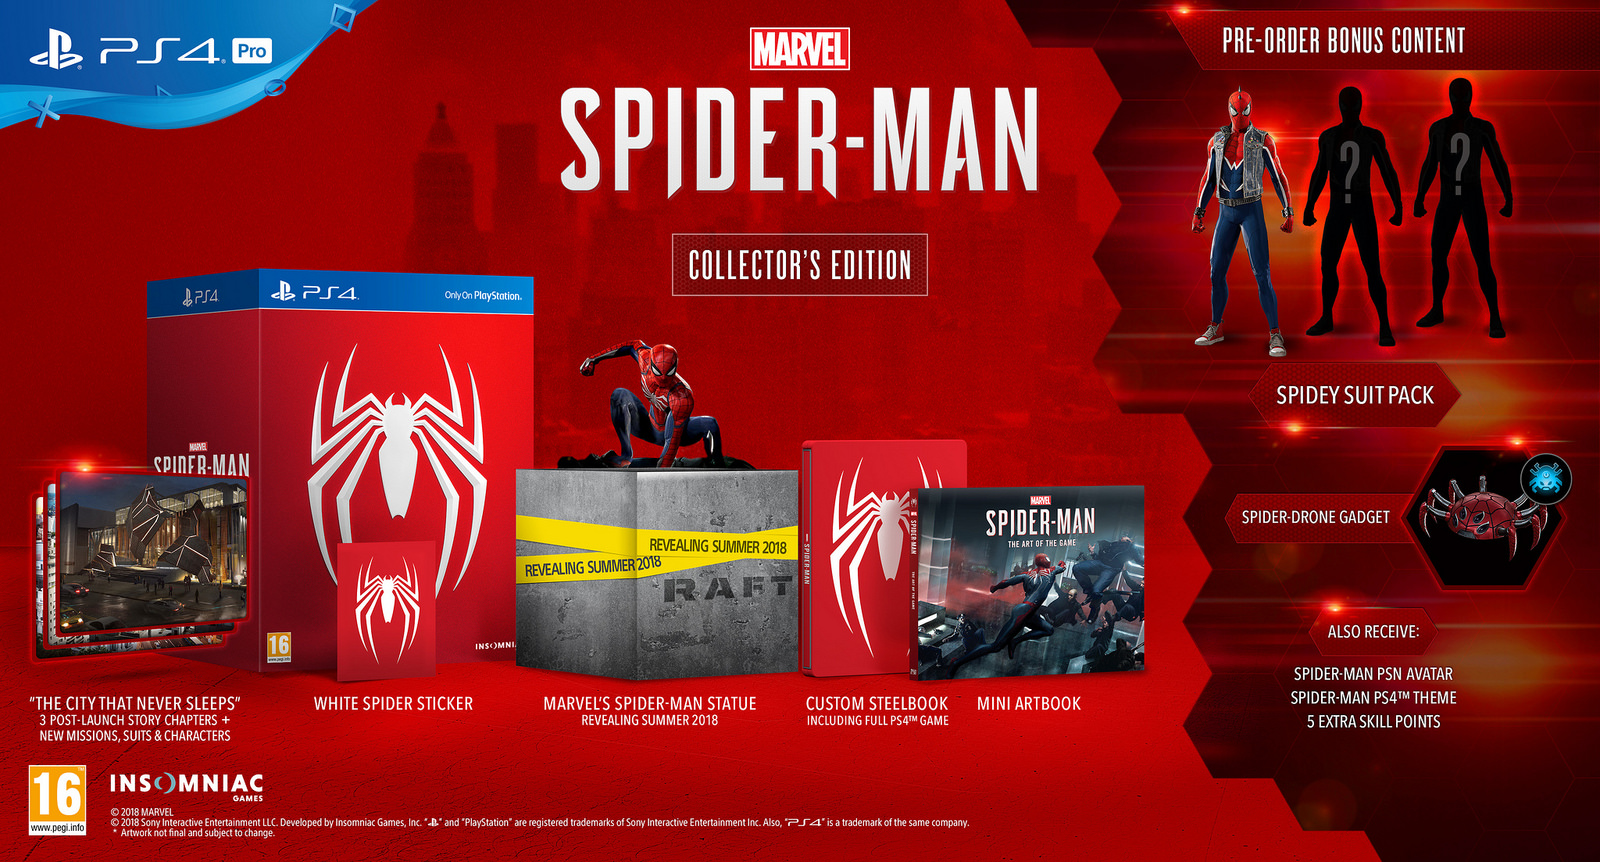 Spiderman is coming to the PS4 September 7th